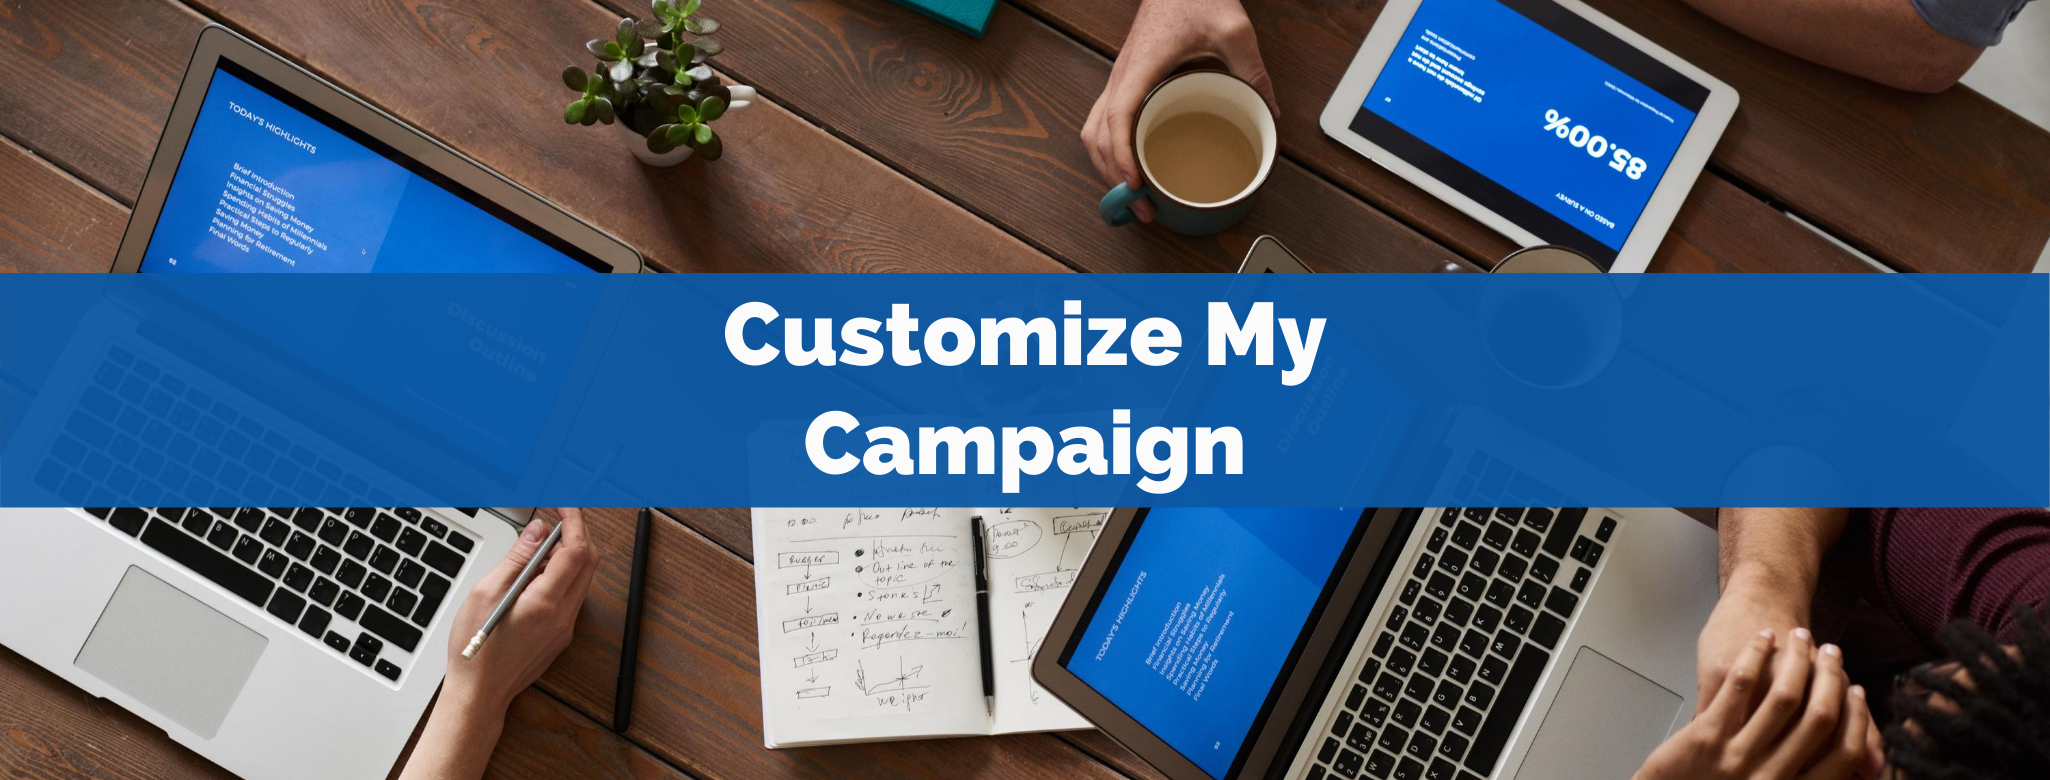 Copy of Customize My Campaign